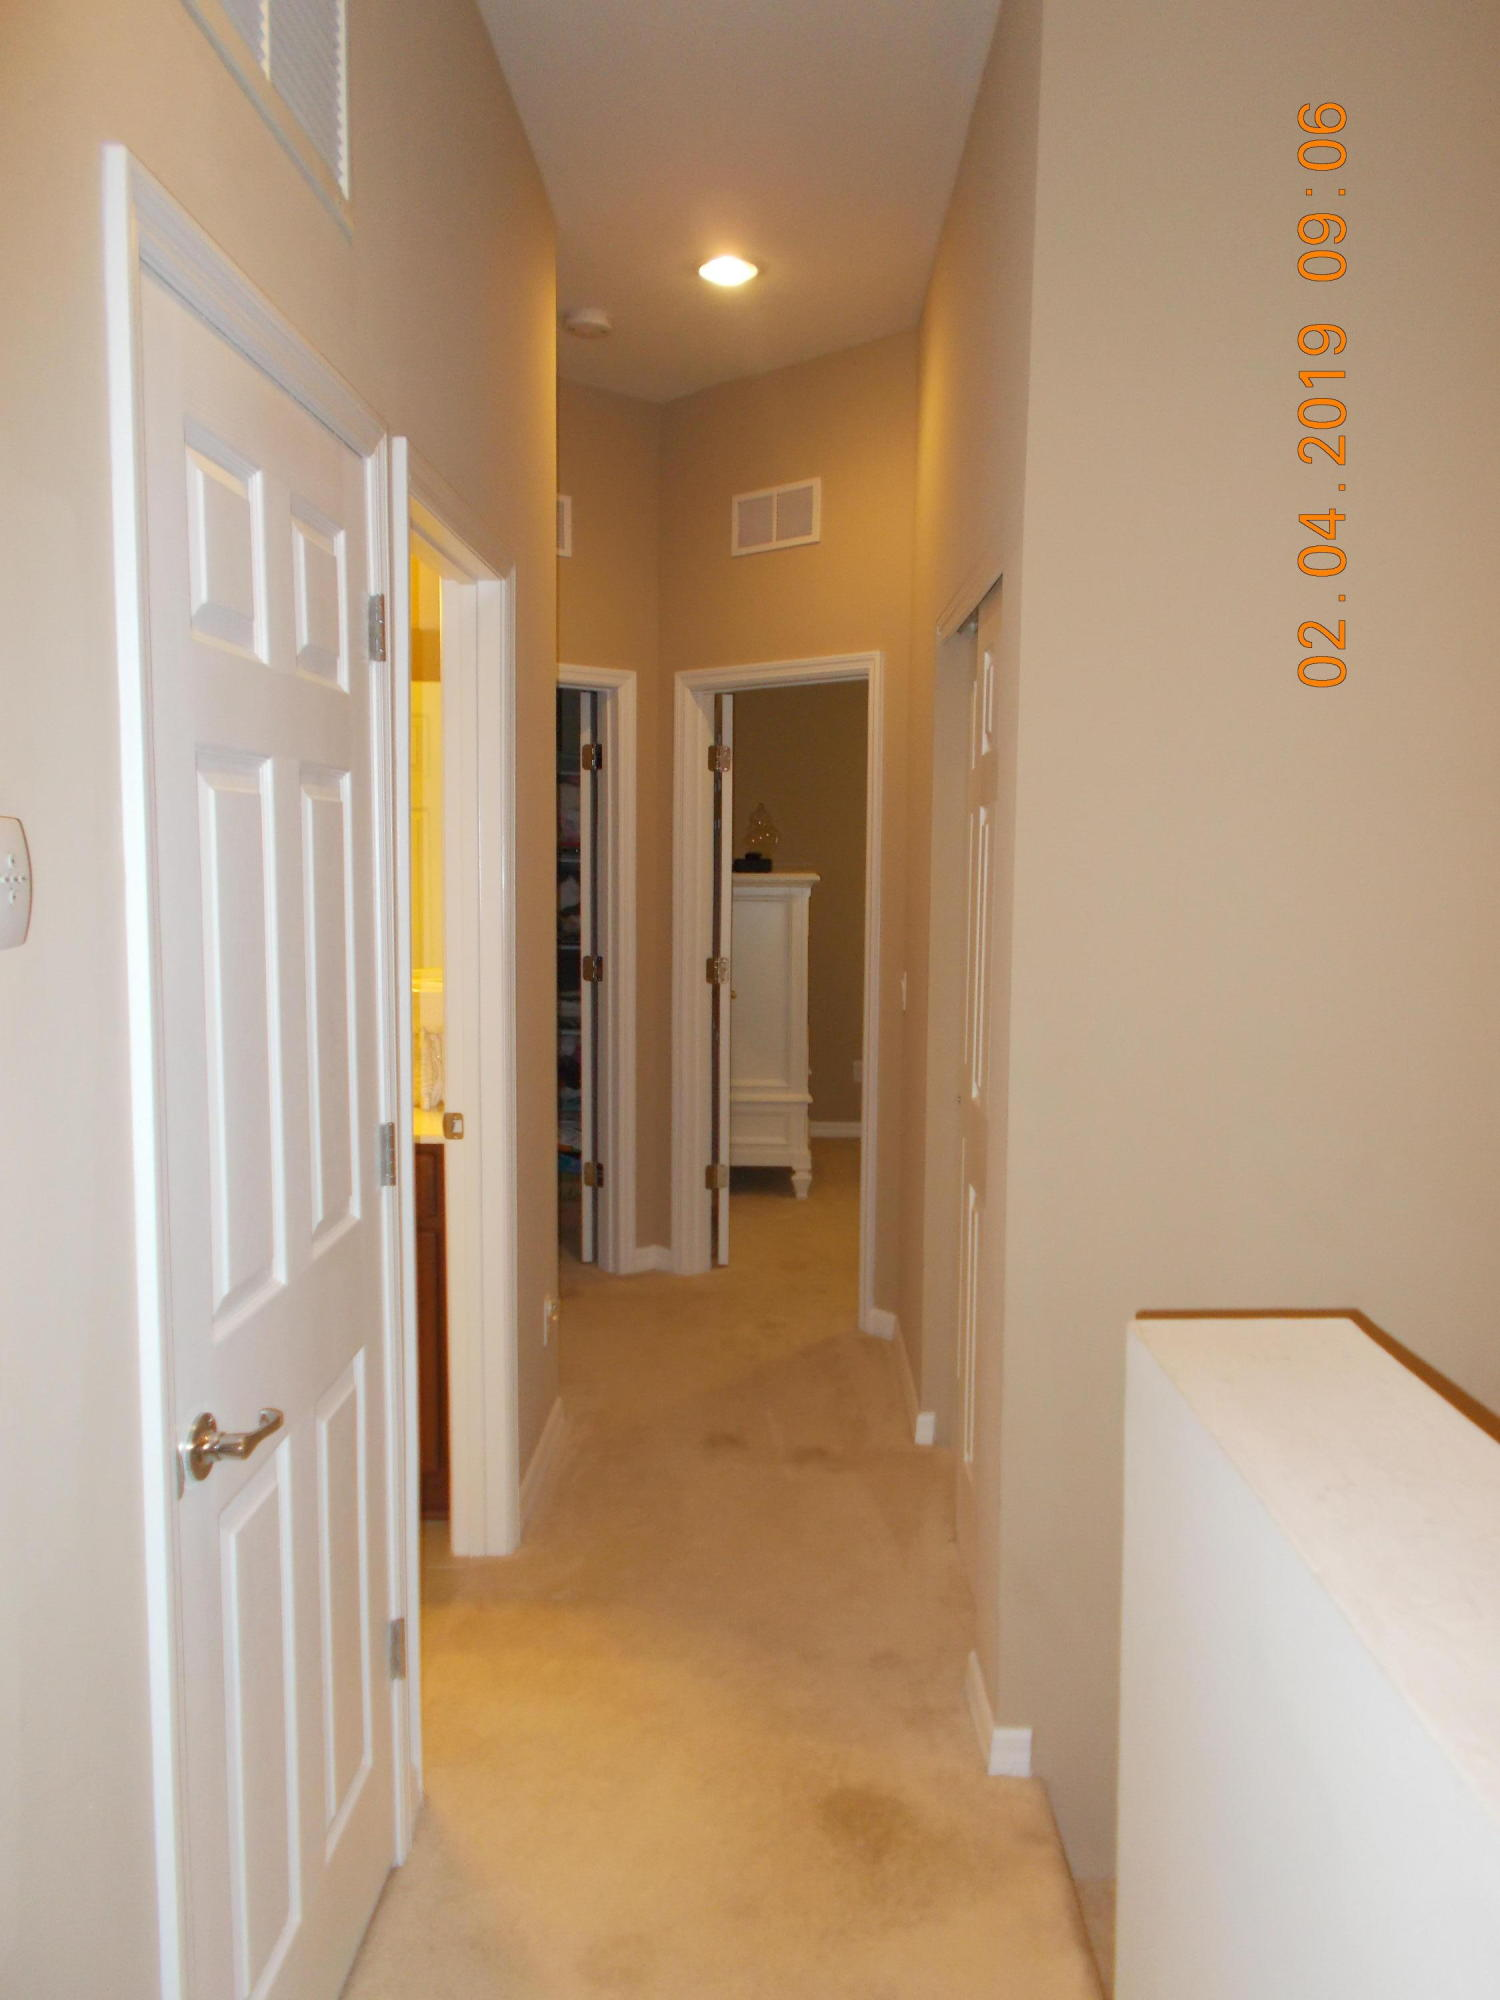 2730 Avalon Way  - Abacoa Homes - photo 19